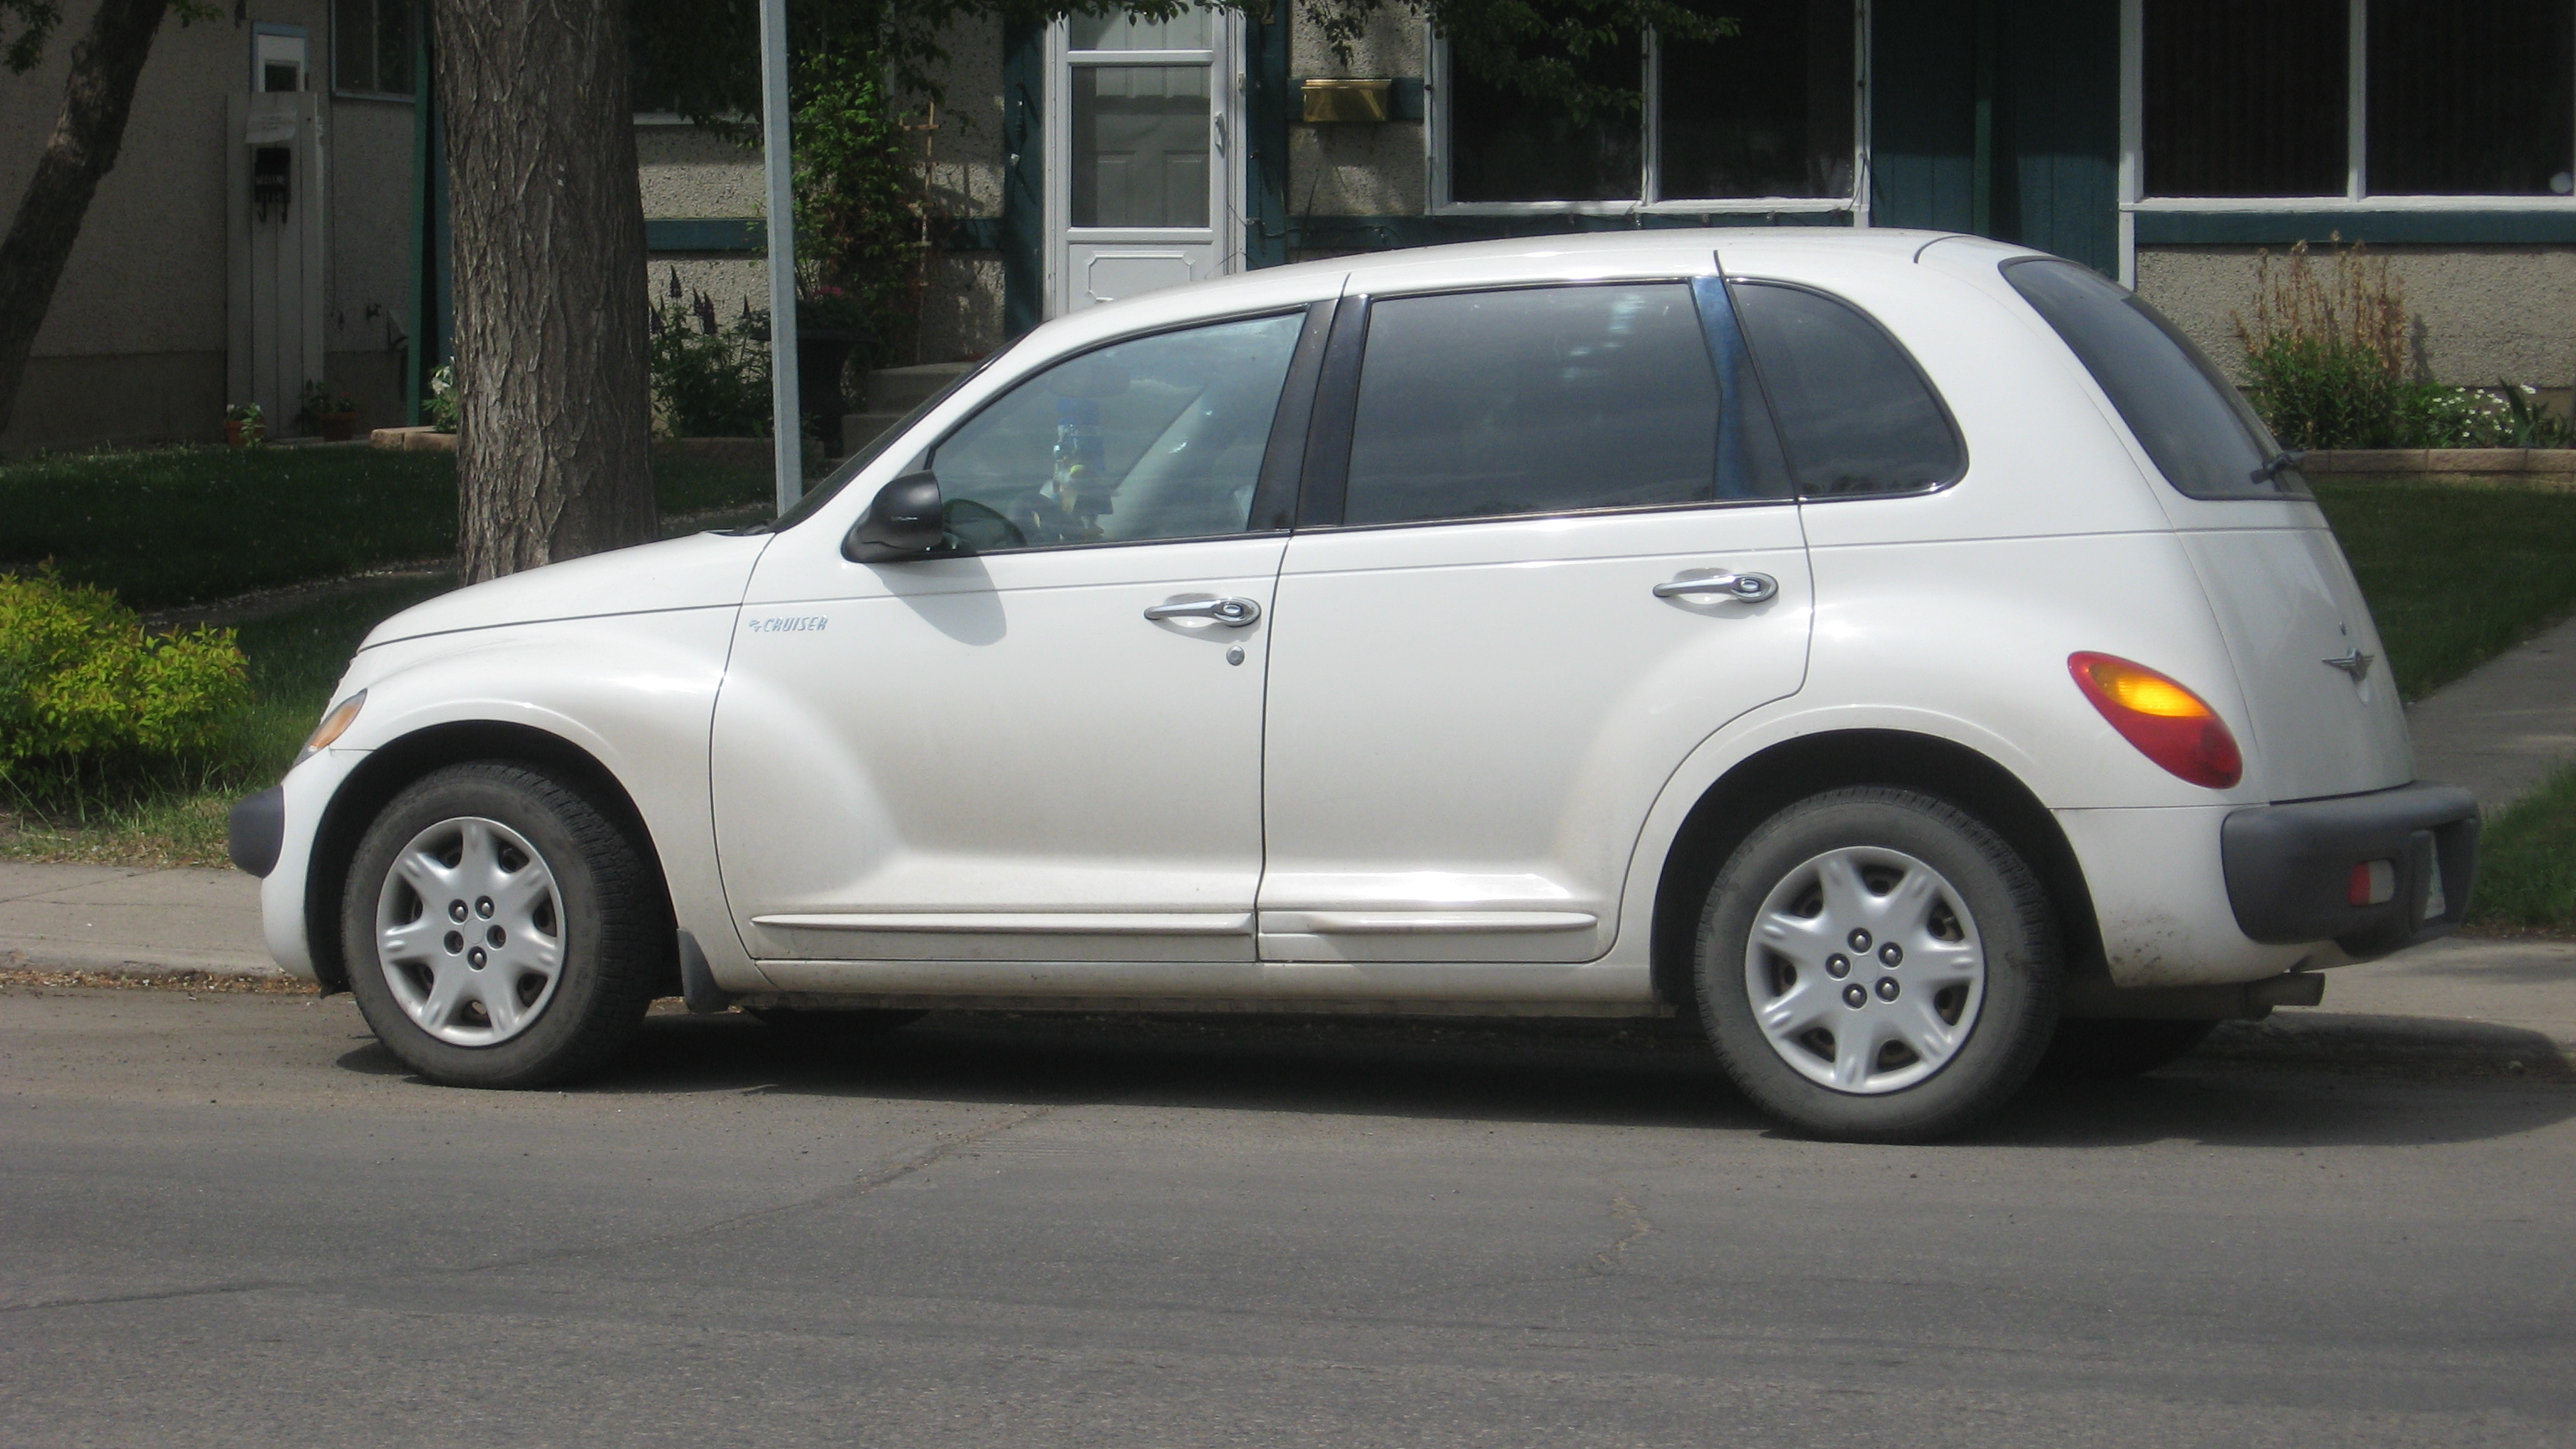 2009 Pt Cruiser Lift Gate Wiring Diagram Library Fuse Trim Levels Canadian Market 5 Door Dream Version Chrysler